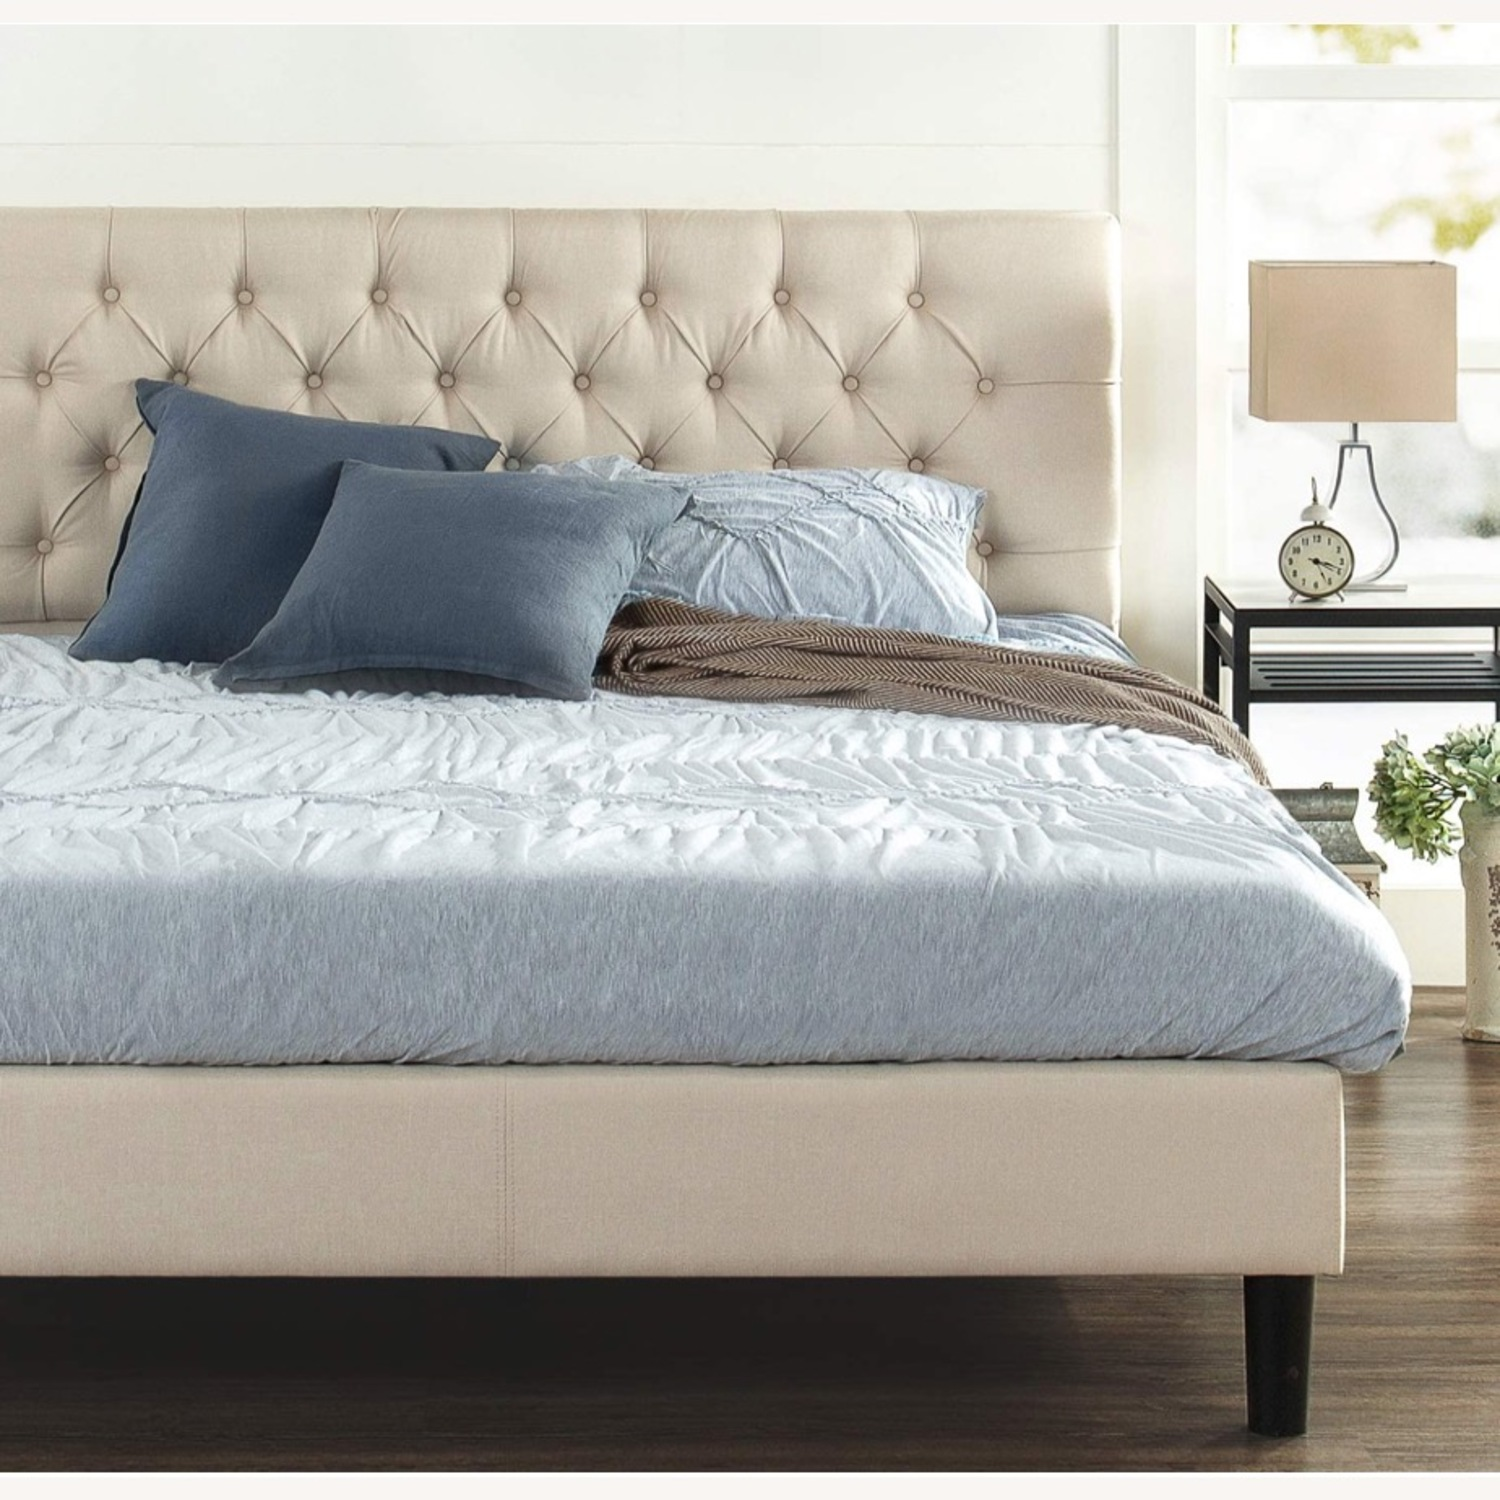 Zin Home Full Tufted Bed Frame - image-1